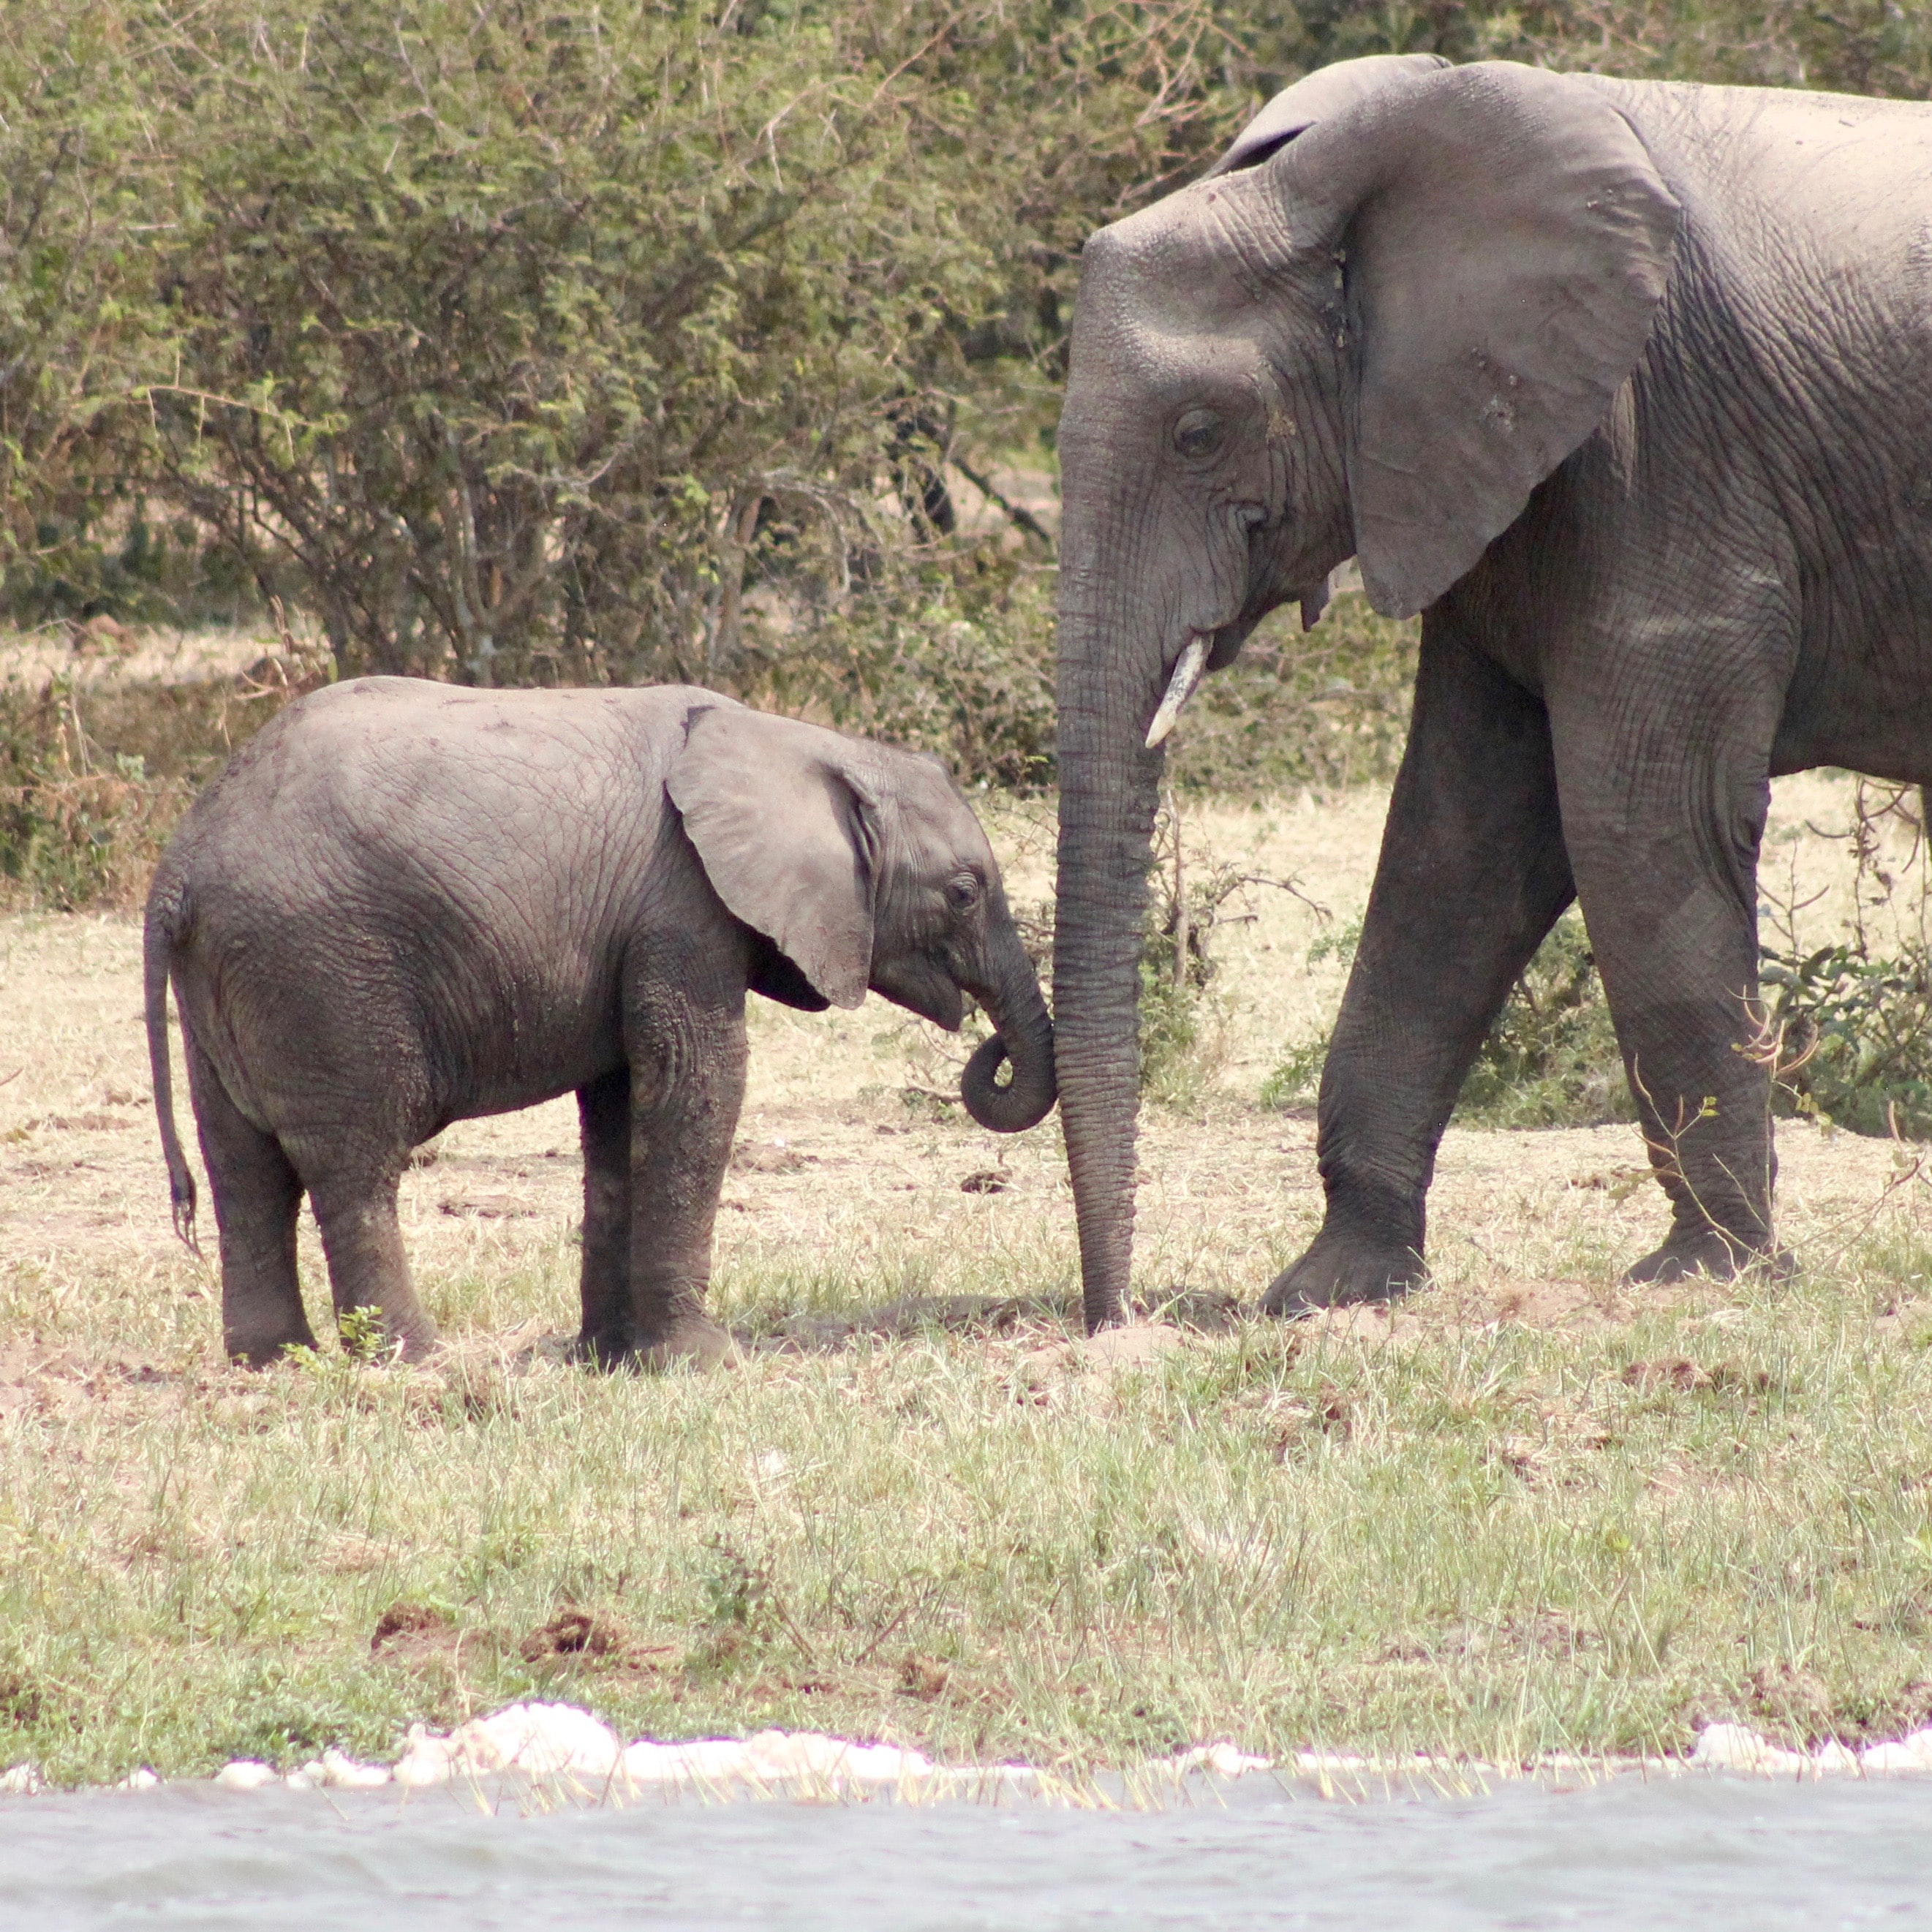 two elephants standing on grass near body of water